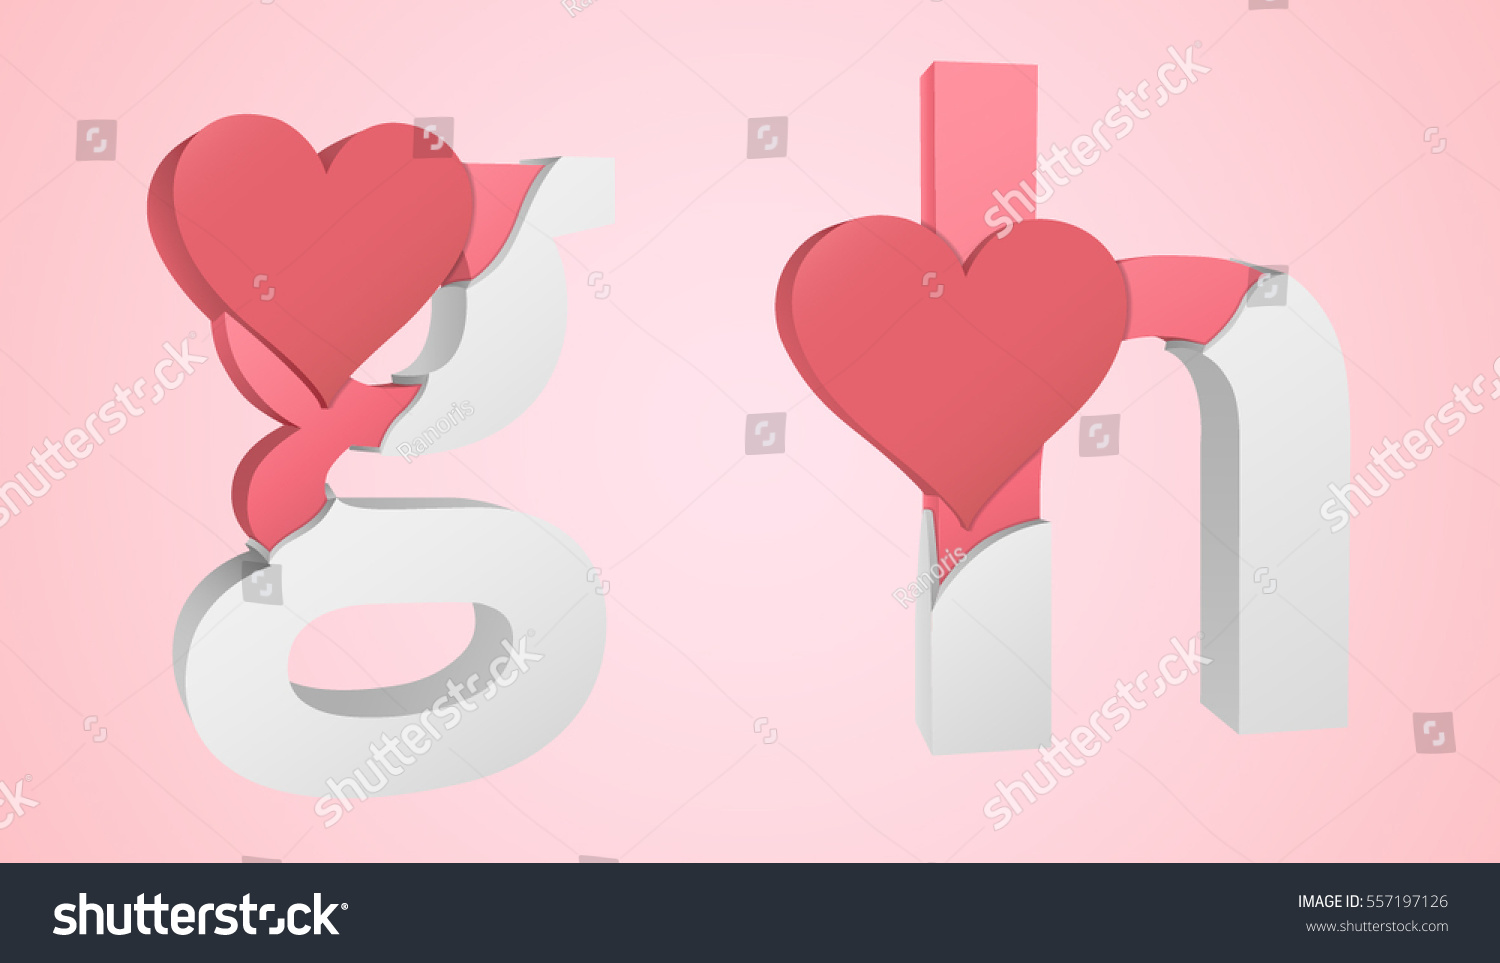 Letters G H Color Pink Inside Stock Vector (Royalty Free) 557197126 ...